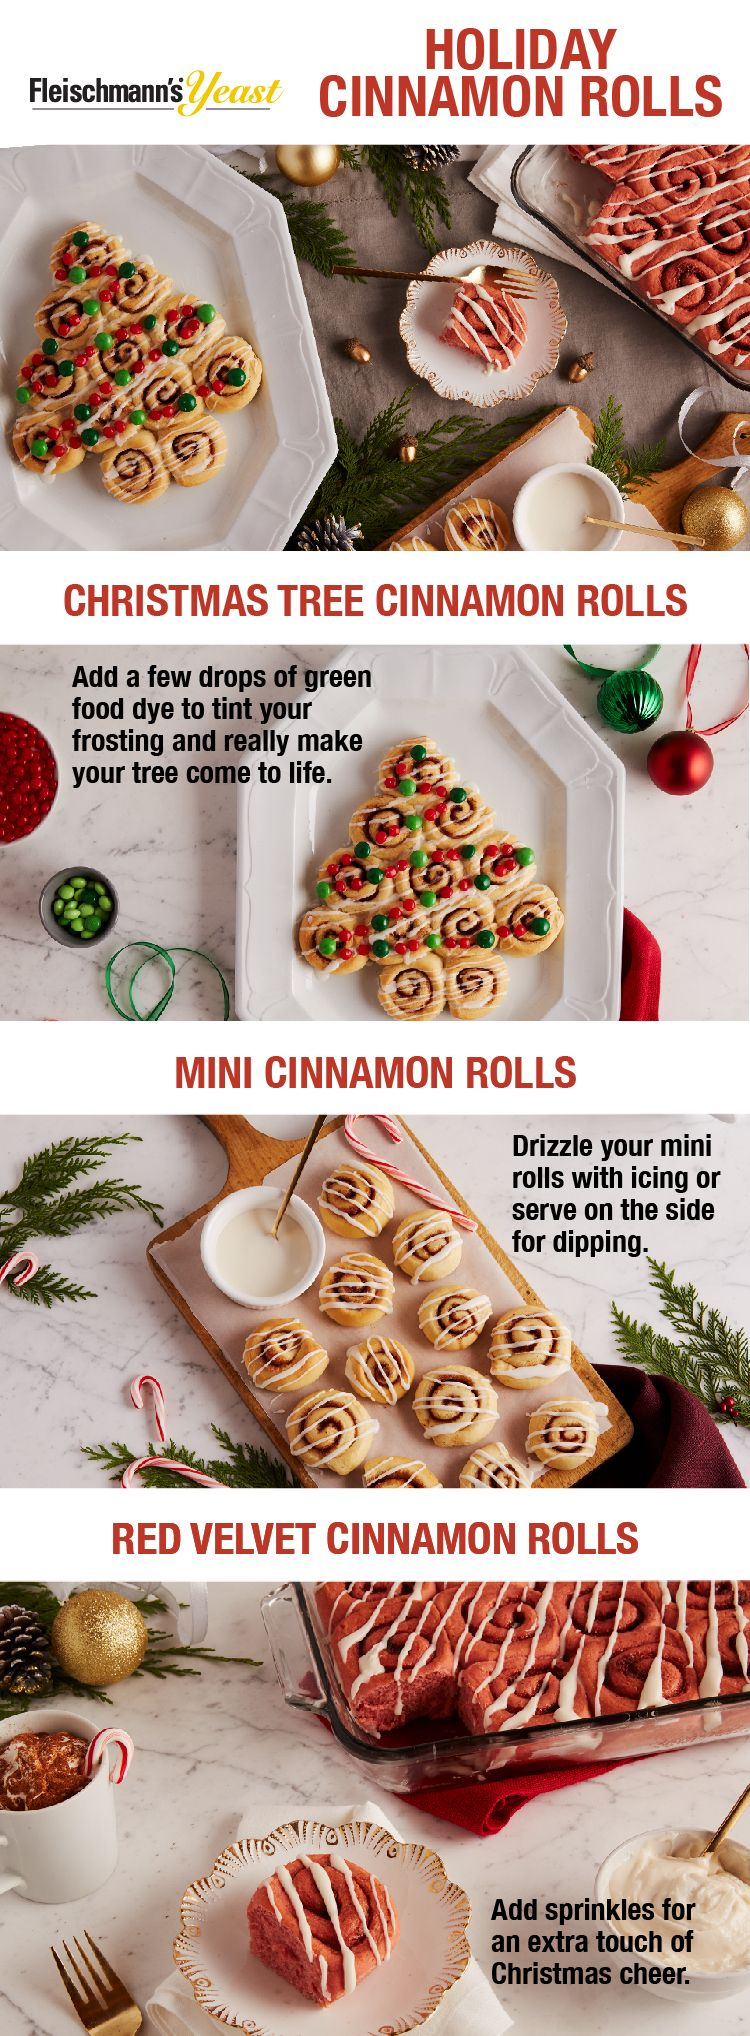 Cinnamon Rolls are the sweetest compliment to any holiday meal and the ways to serve them up are endless. We love them baked as Christmas Trees, with a taste of Red Velvet and as Minis! Visit the Fleischmann's Yeast website for more easy Cinnamon Roll recipes.